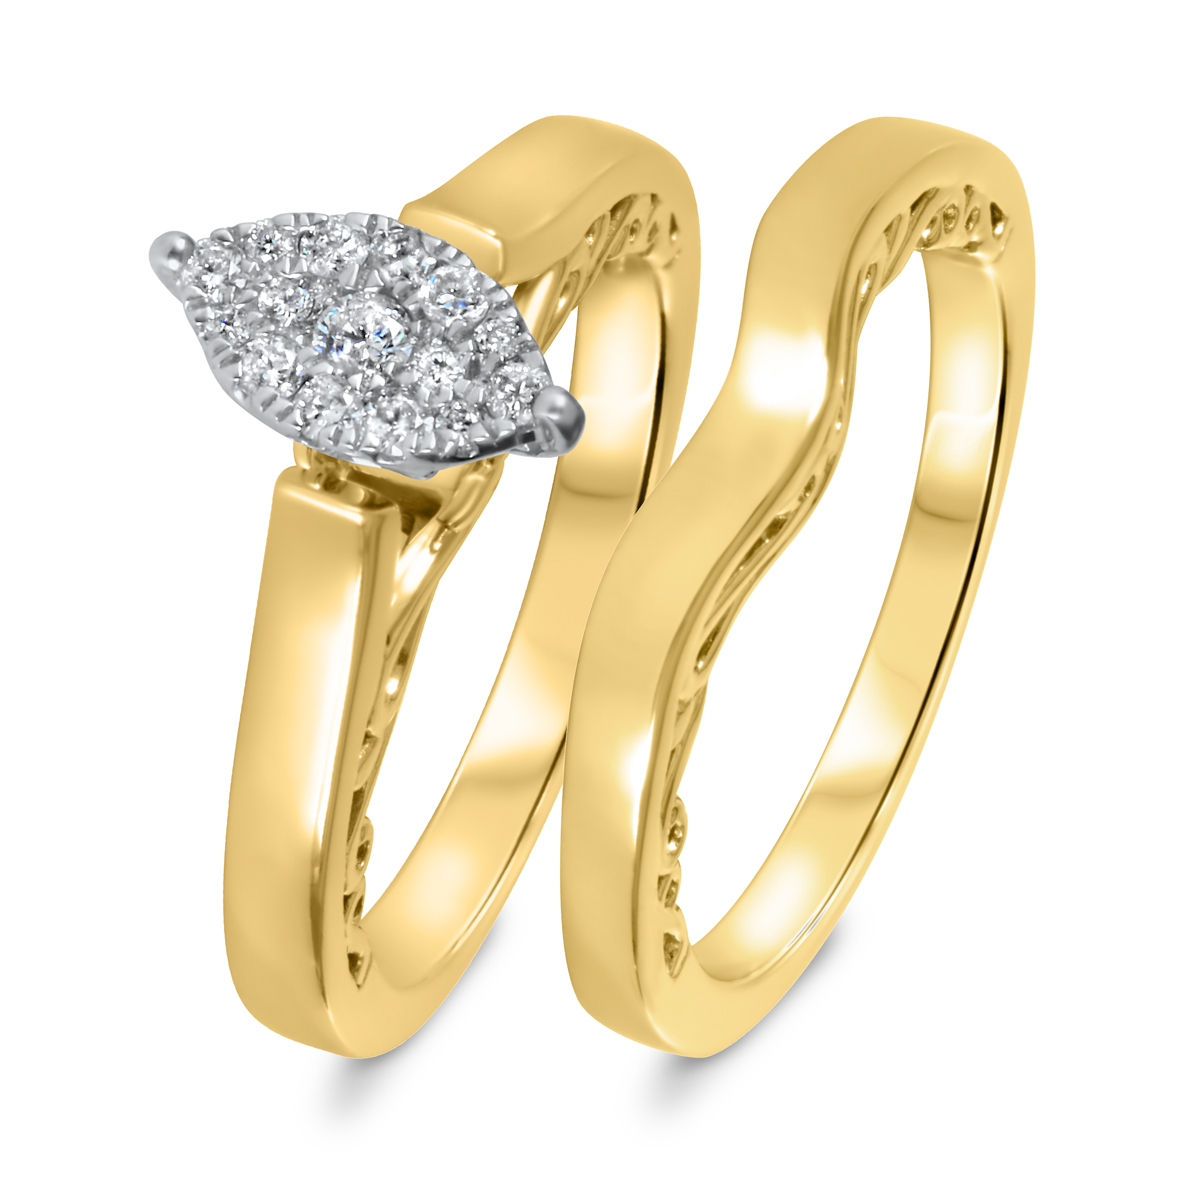 1/5 CT. T.W. Diamond Women's Bridal Wedding Ring Set 10K Yellow Gold